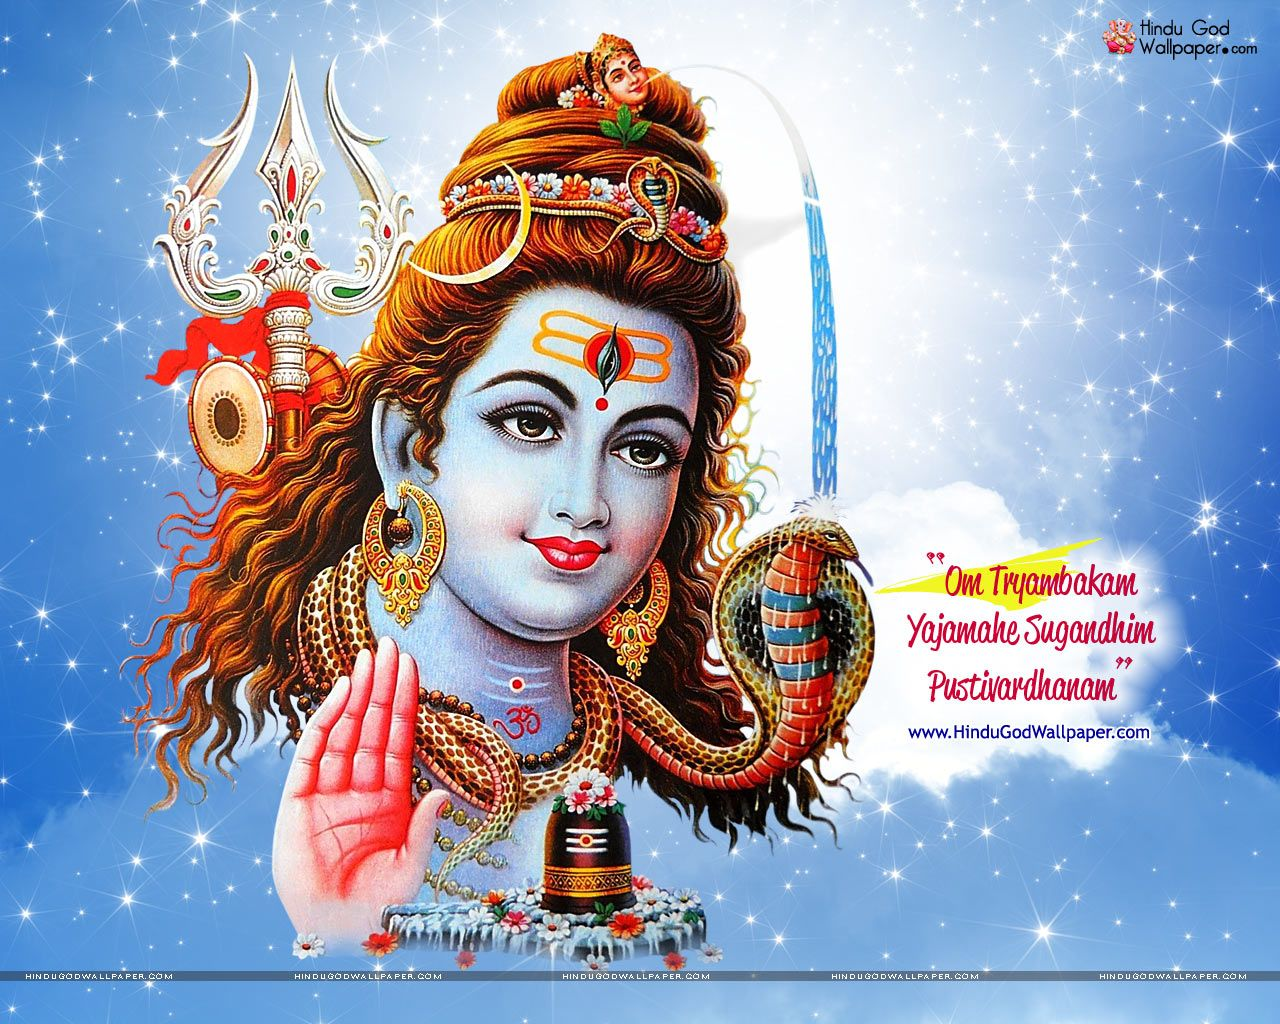 Maha Shivaratri Wallpaper With Quotes Free Download Hd Images Wallpaper Wallpaper Pictures